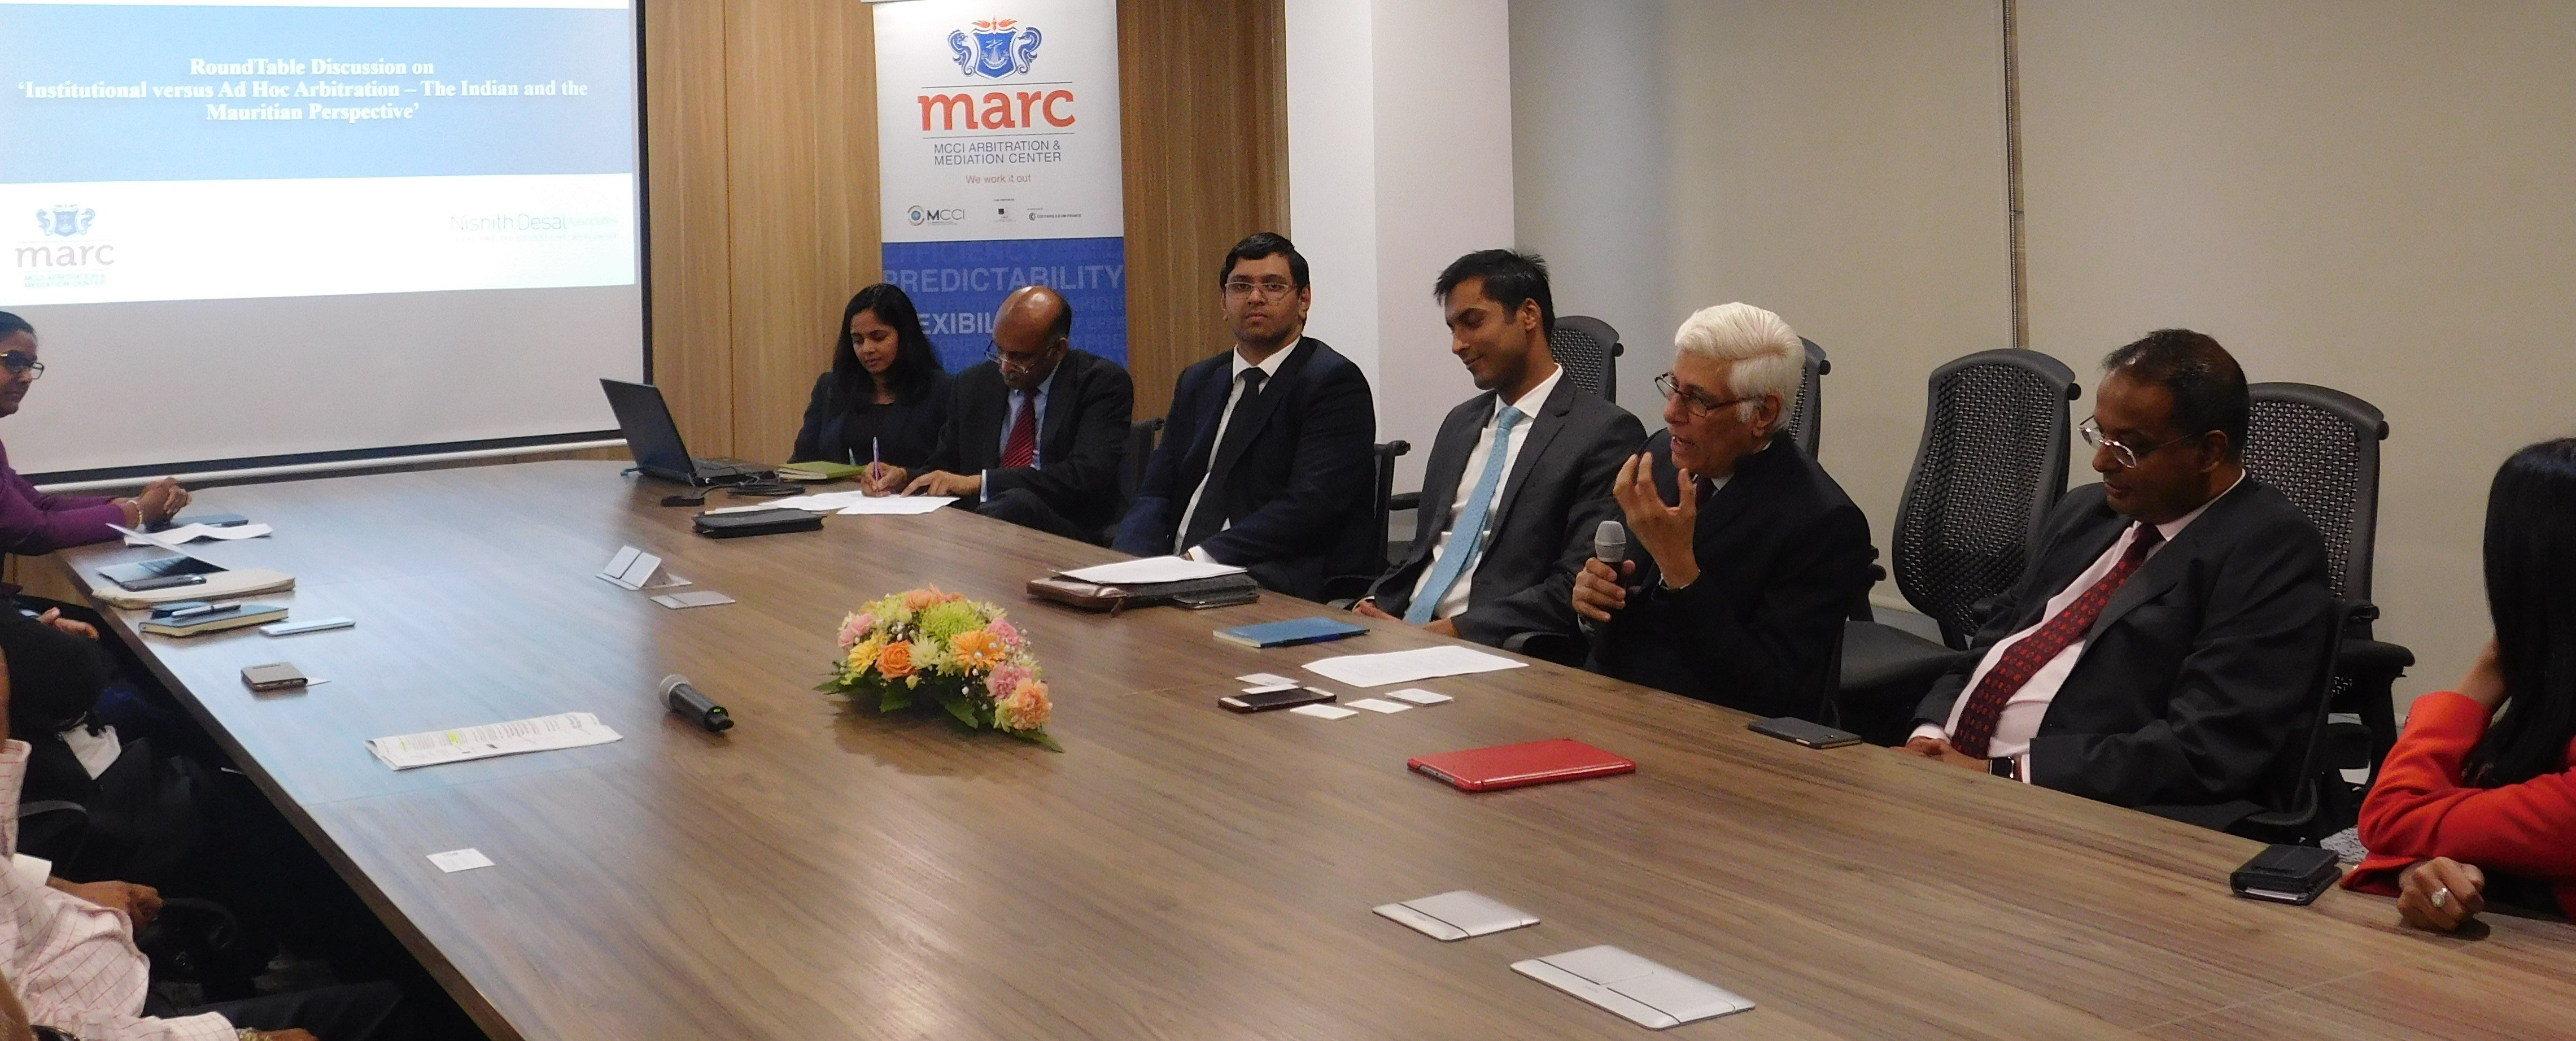 RoundTable on 'Institutional versus Ad Hoc Arbitration: The Indian and The Mauritian Perspective'